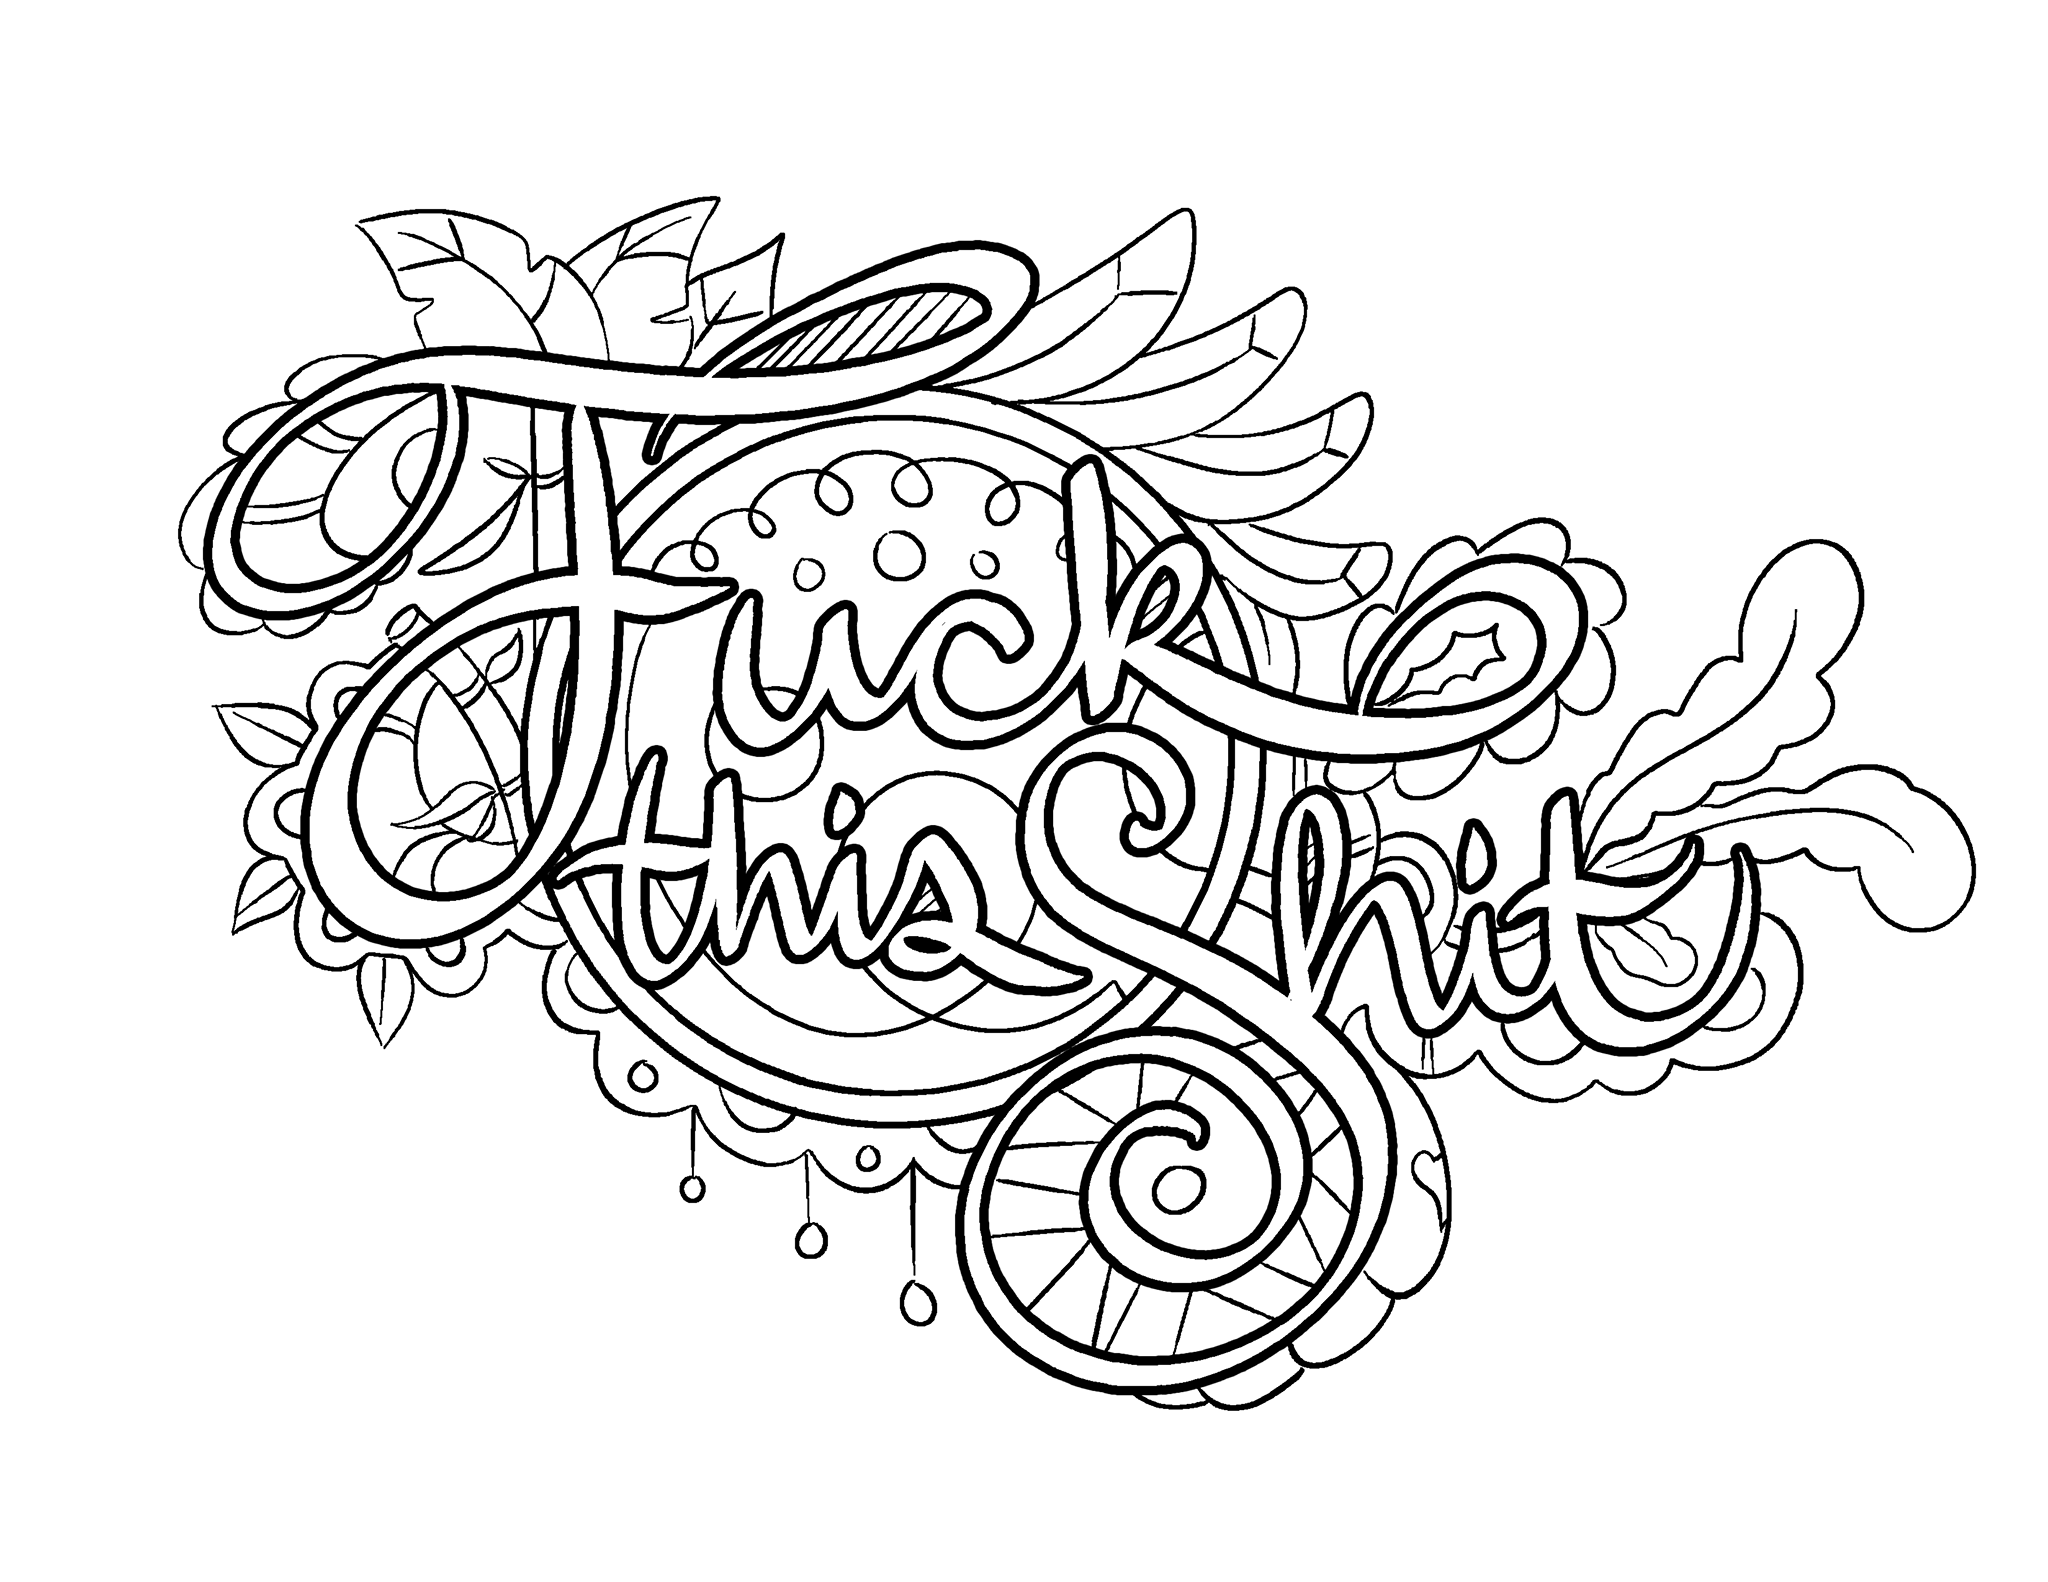 Swear word coloring book volume 1 - Fuck This Shit Coloring Page By Colorful Language